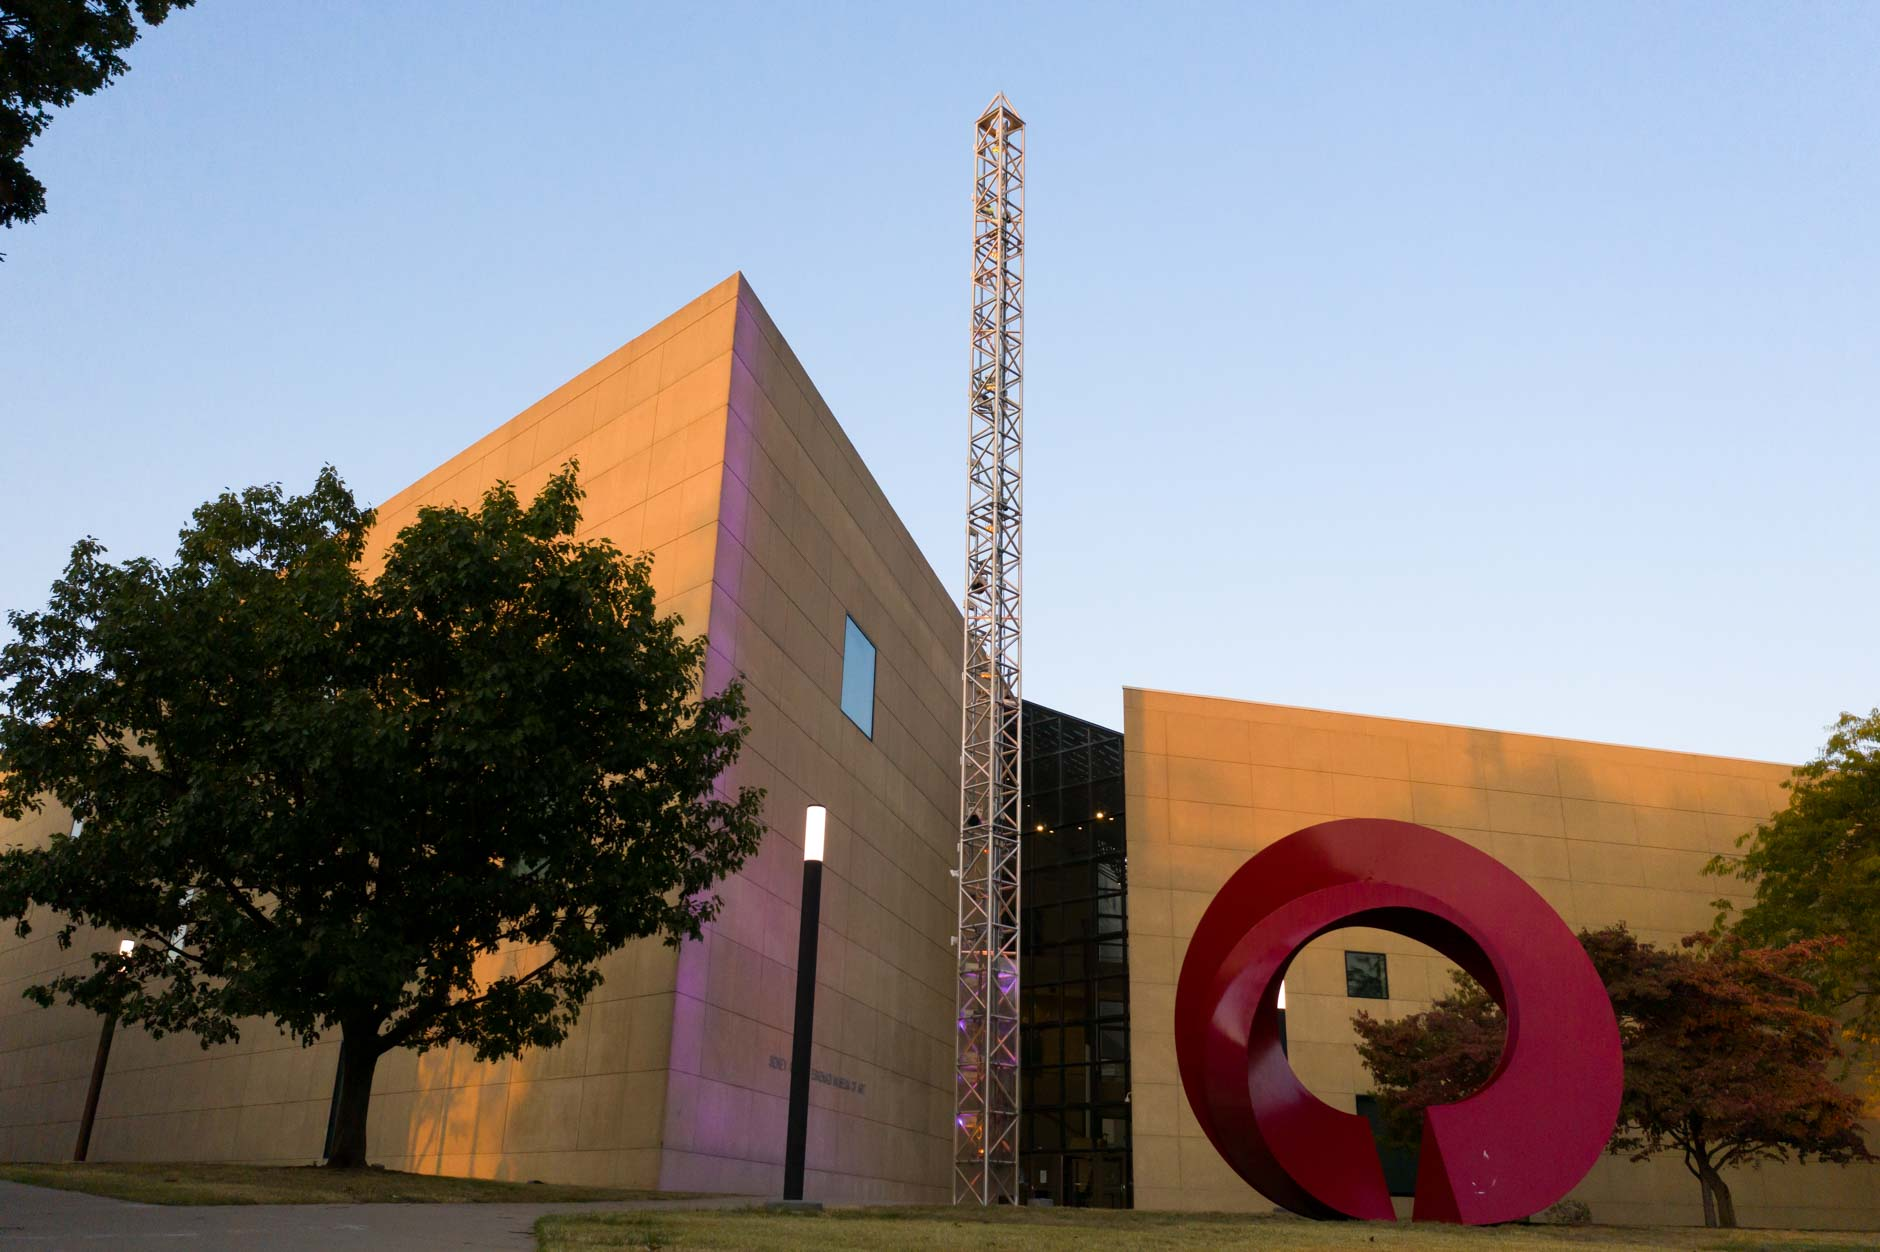 The Eskenazi Museum of Art at Indiana University is pictured on a fall evening on Tuesday, Oct. 6, 2020. Architect I.M. Pei designed the building. (James Brosher/Indiana University)